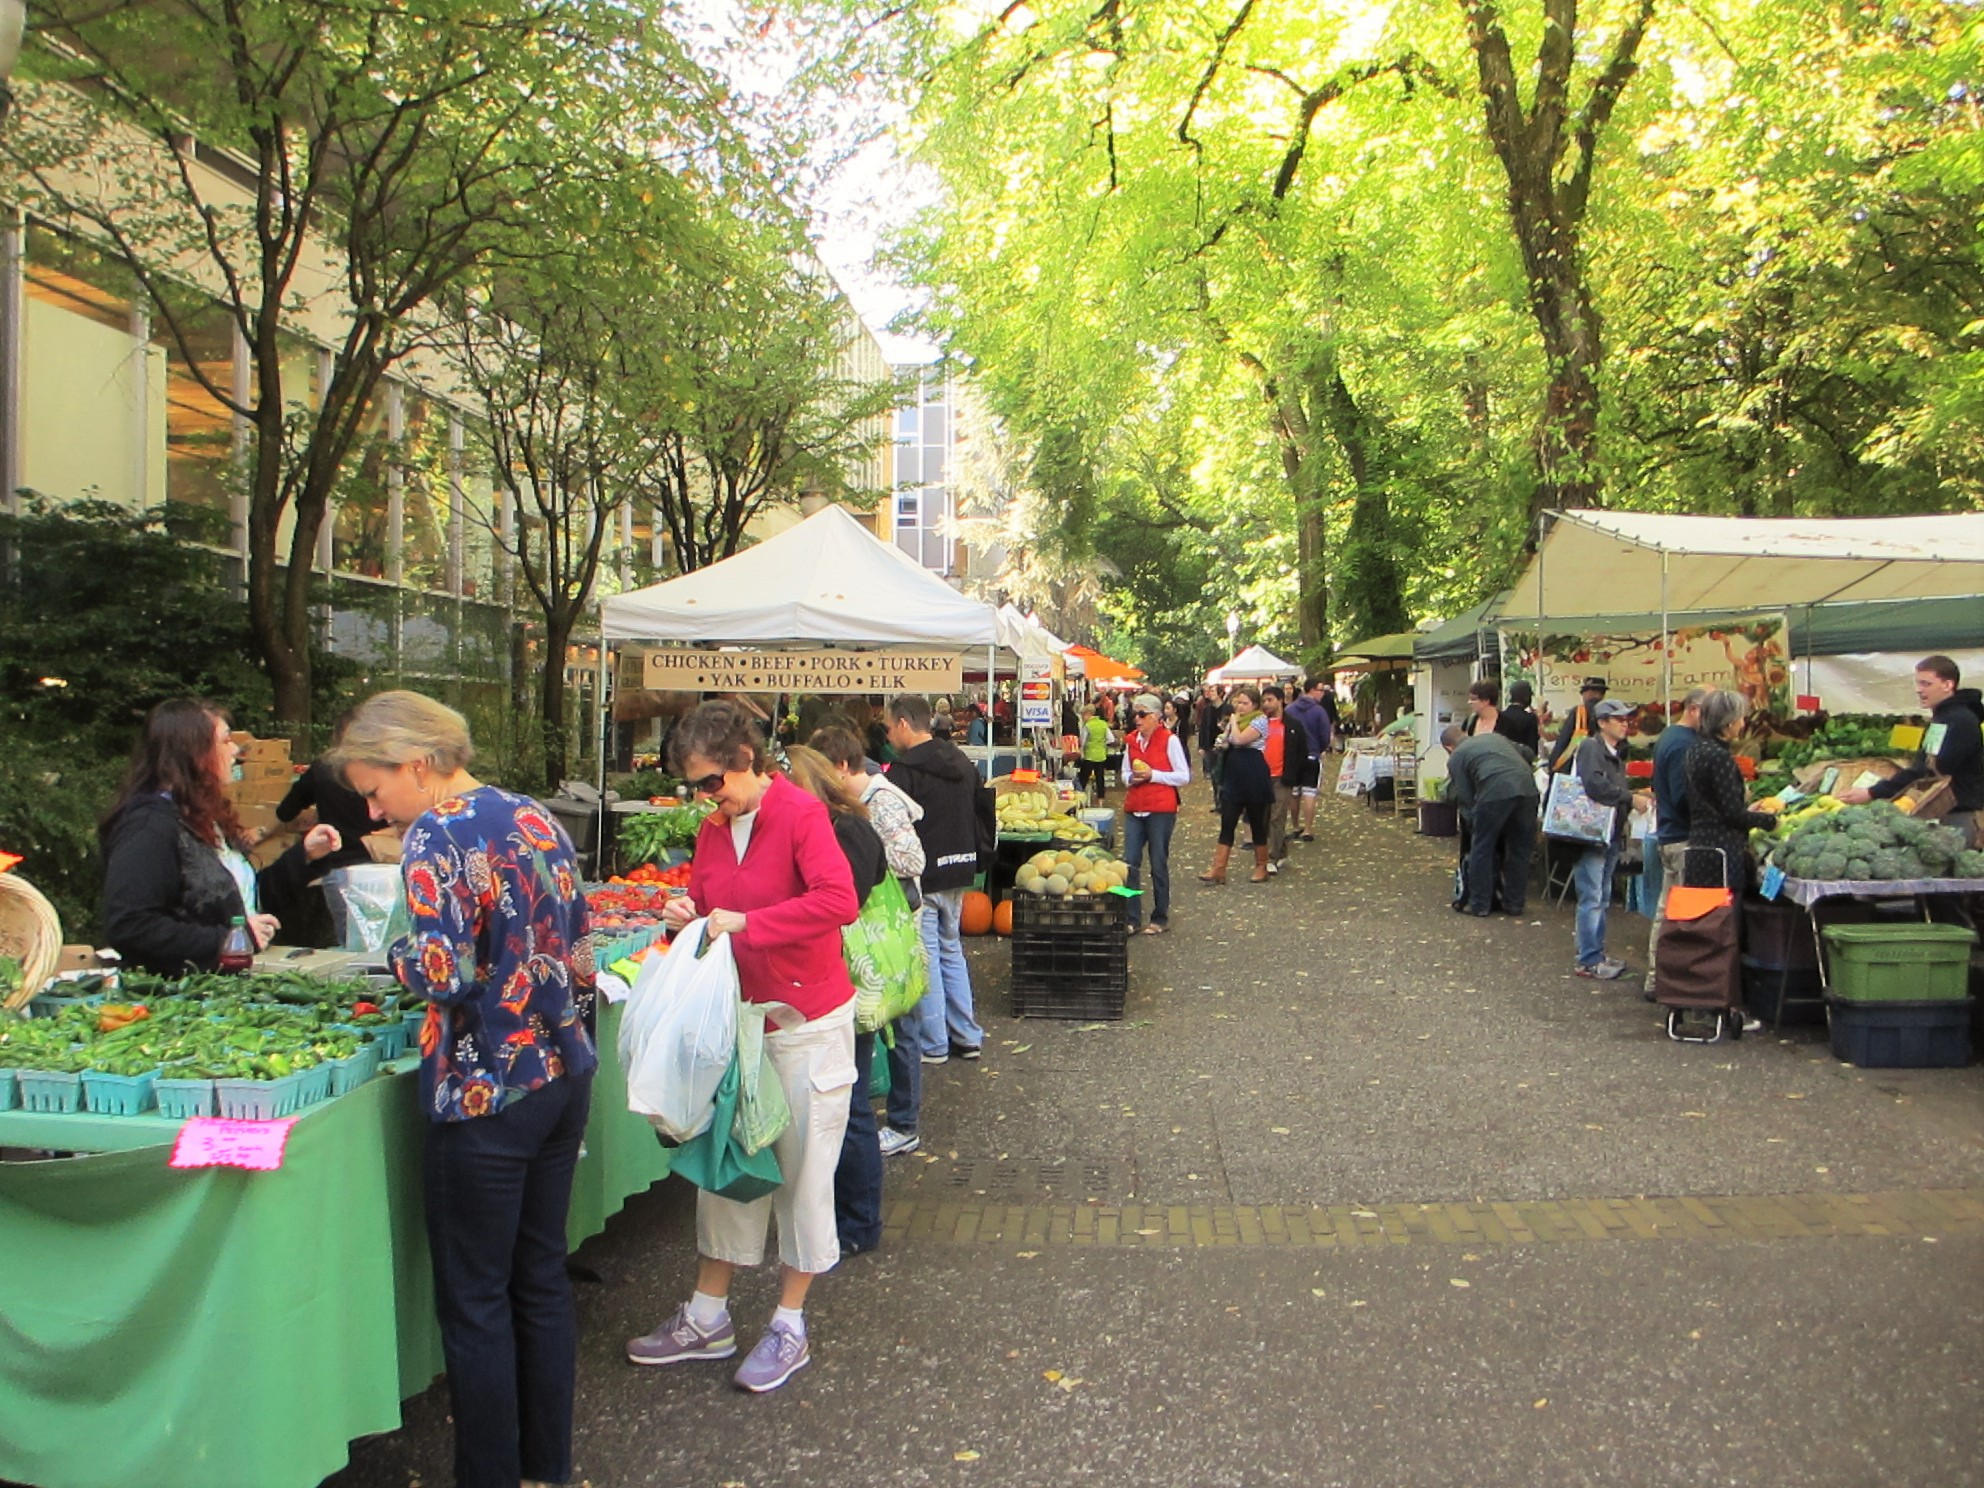 Portland Farmers Market, photo by Mack Male via Flickr Creative Commons